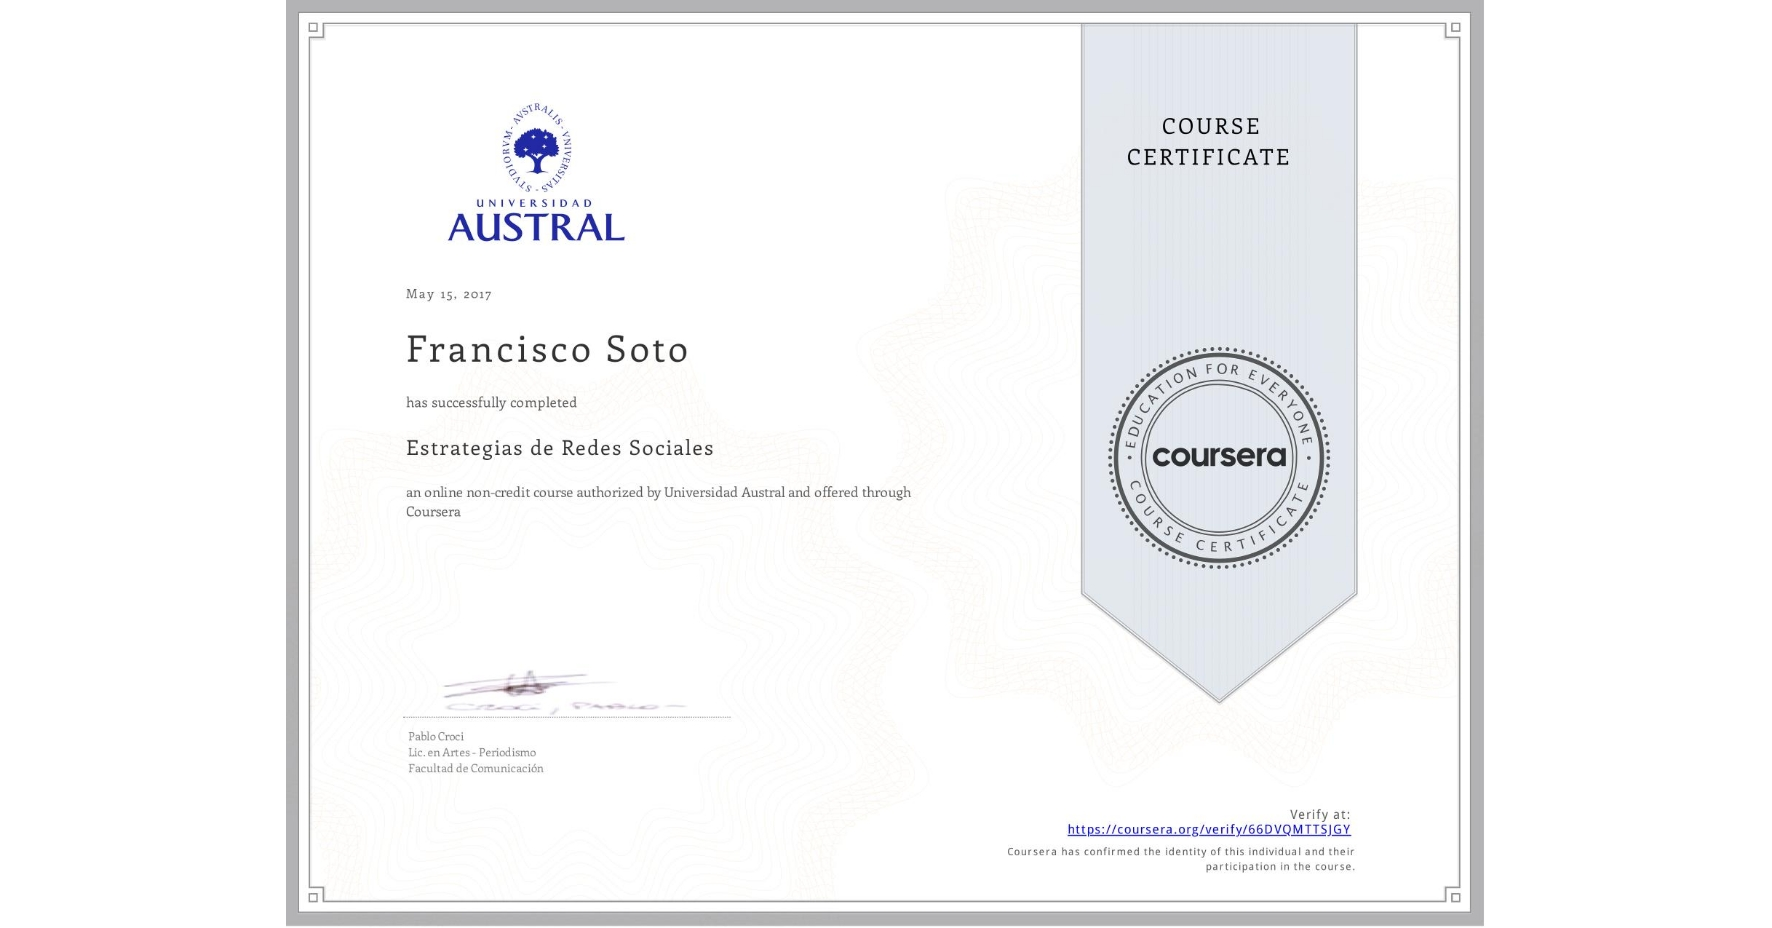 View certificate for Francisco Soto, Estrategias de  Redes Sociales, an online non-credit course authorized by Universidad Austral and offered through Coursera